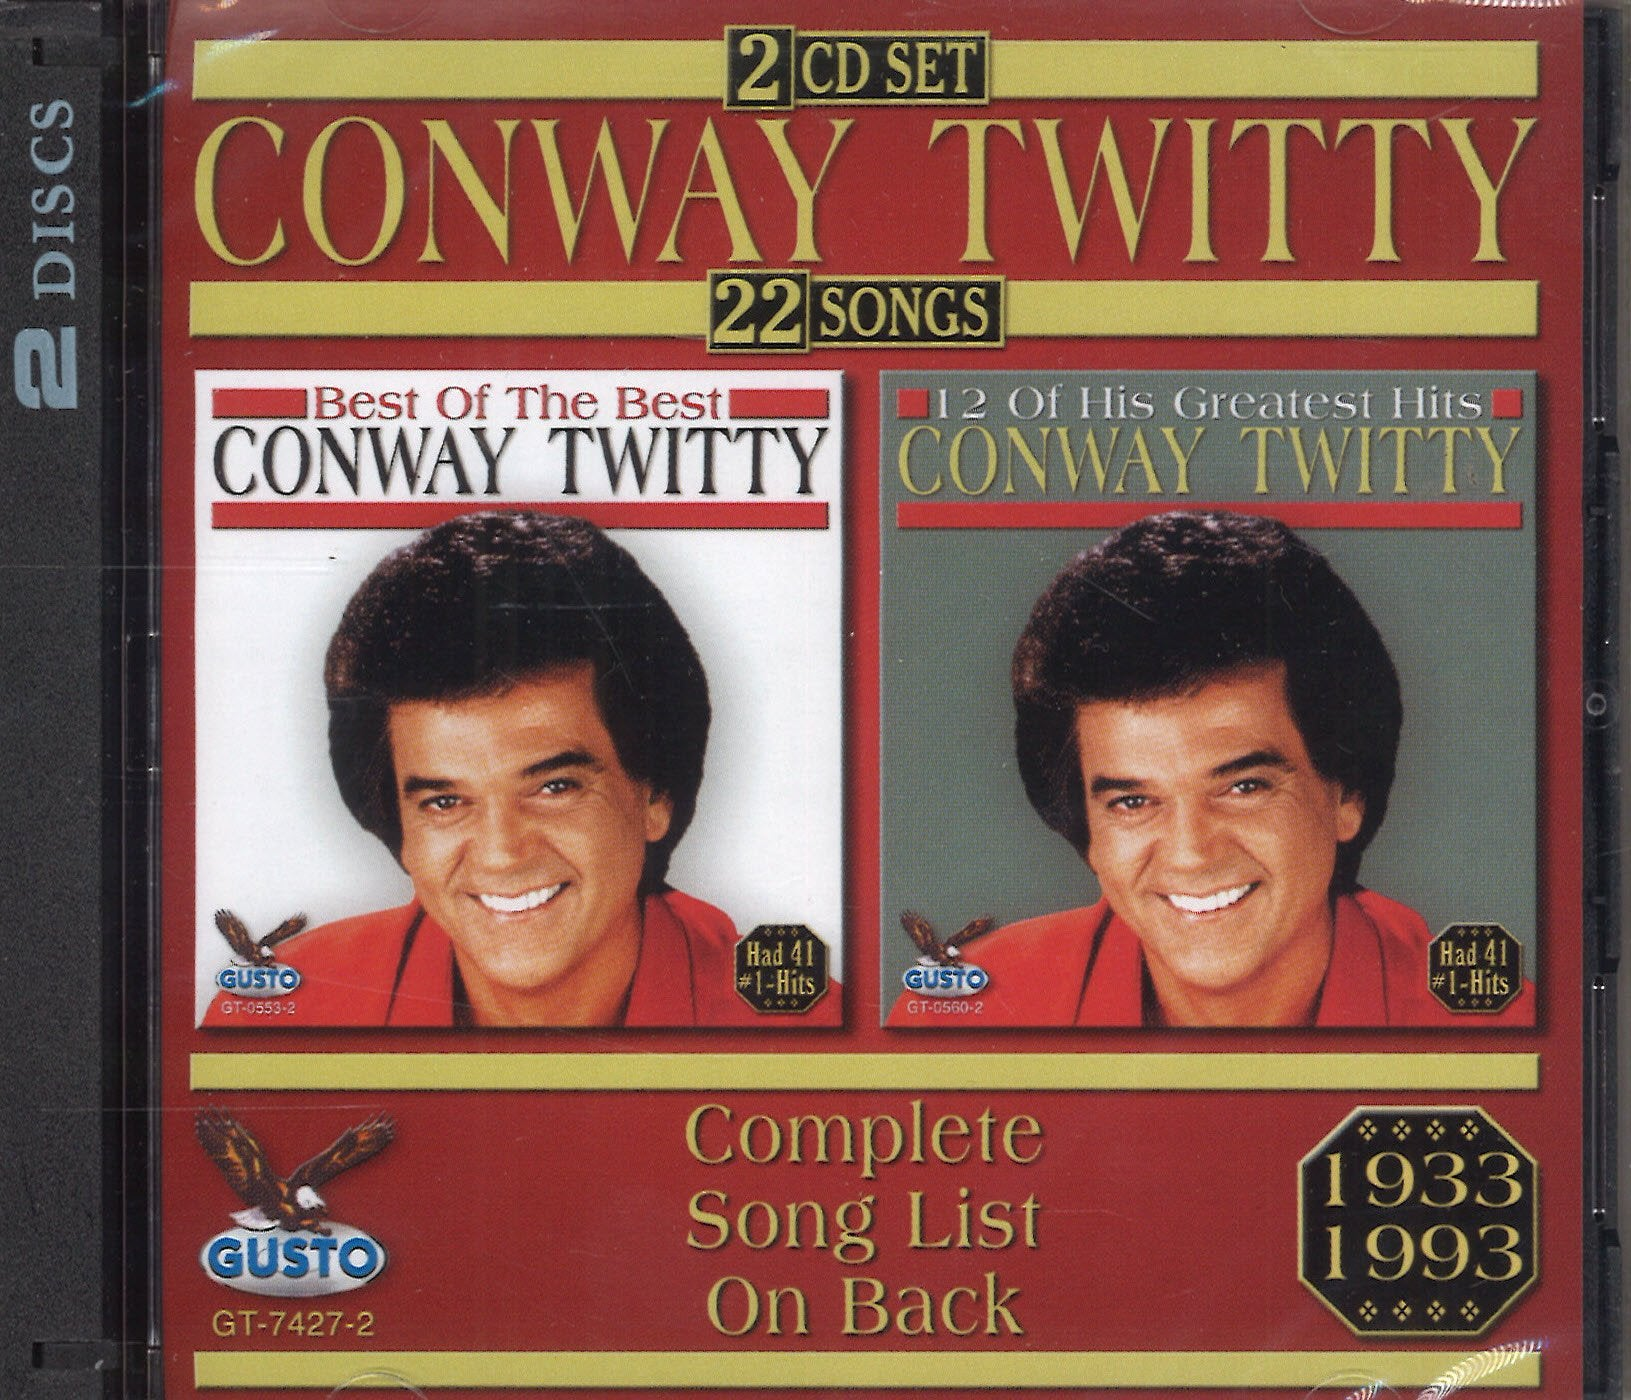 Conway Twitty: 2 CD Set